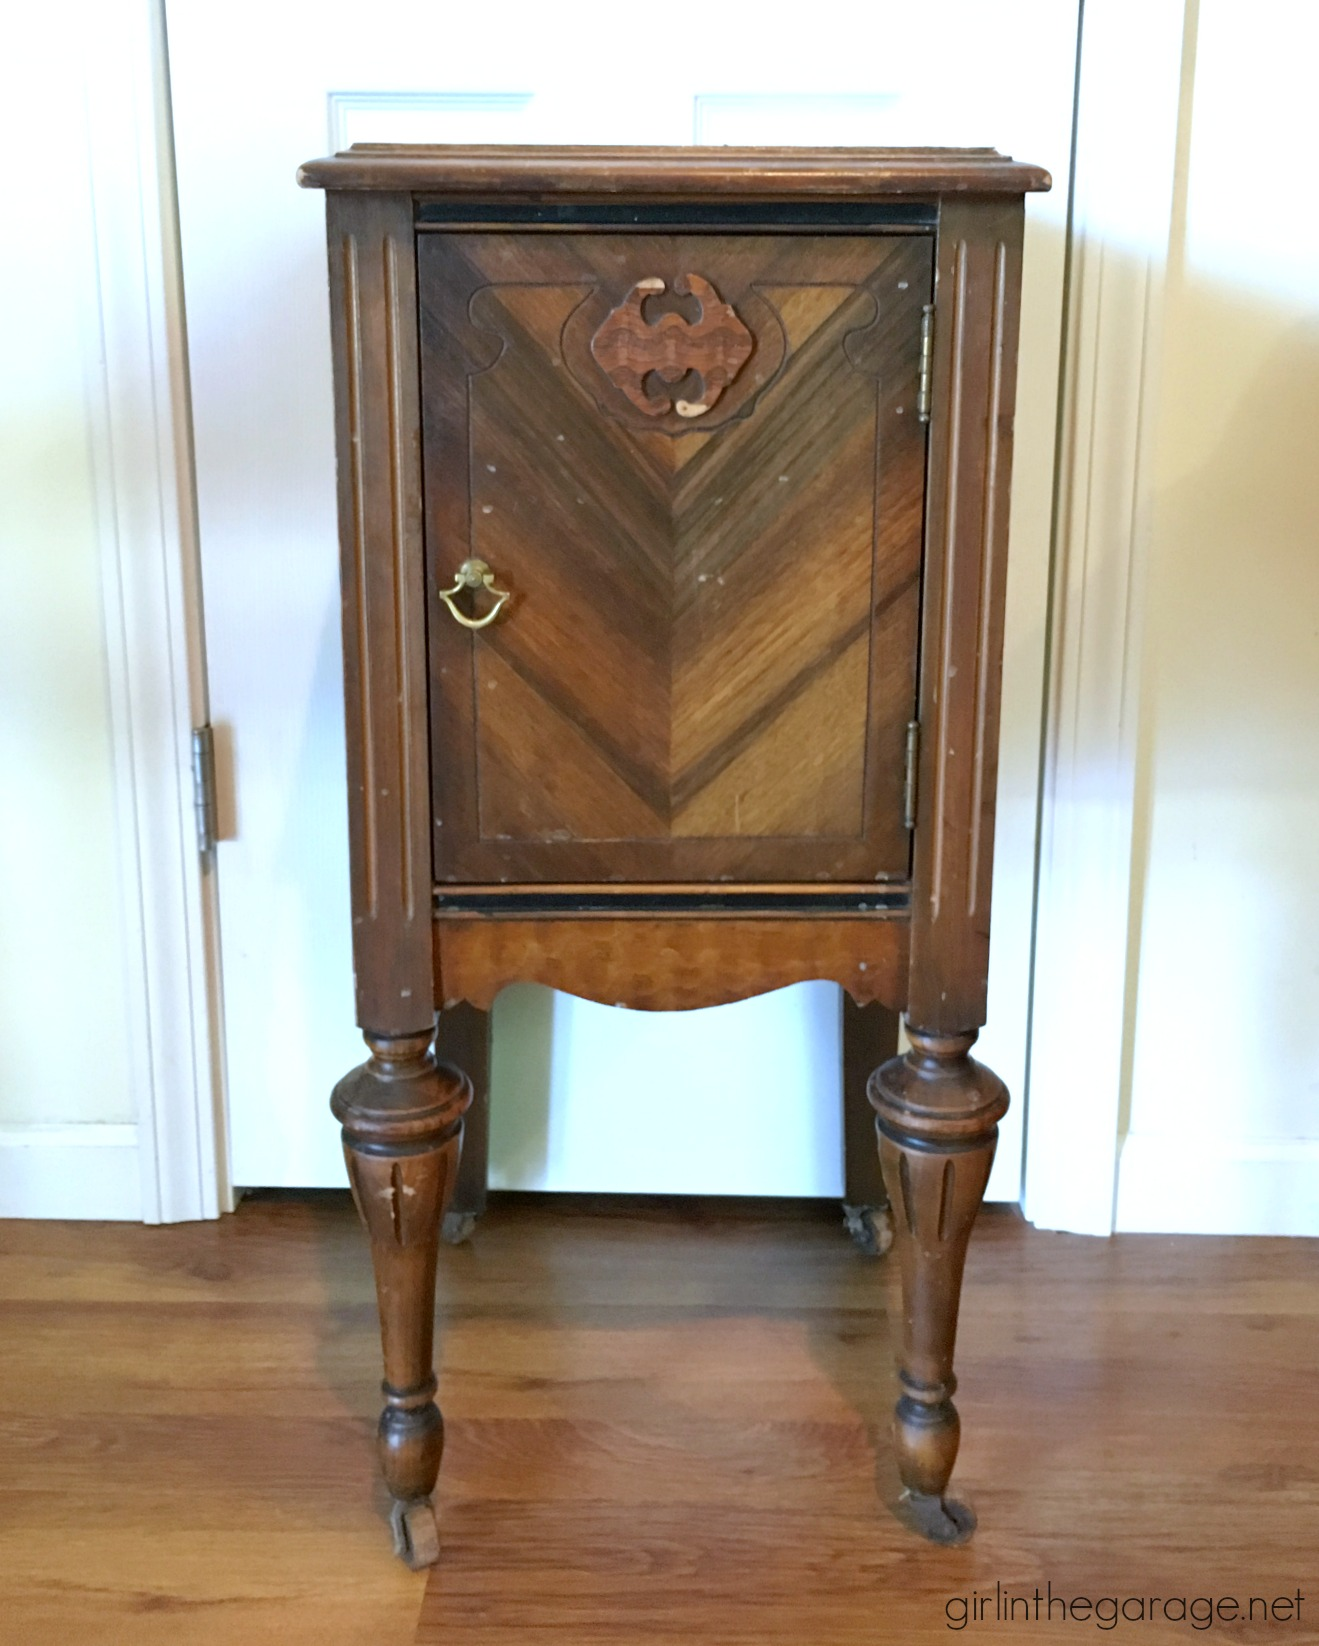 antique nightstand makeover with damaged veneer girl the garage img before bedroom end tables table coffee glass oval dark wood creative dog beds best paint for wooden chairs diy